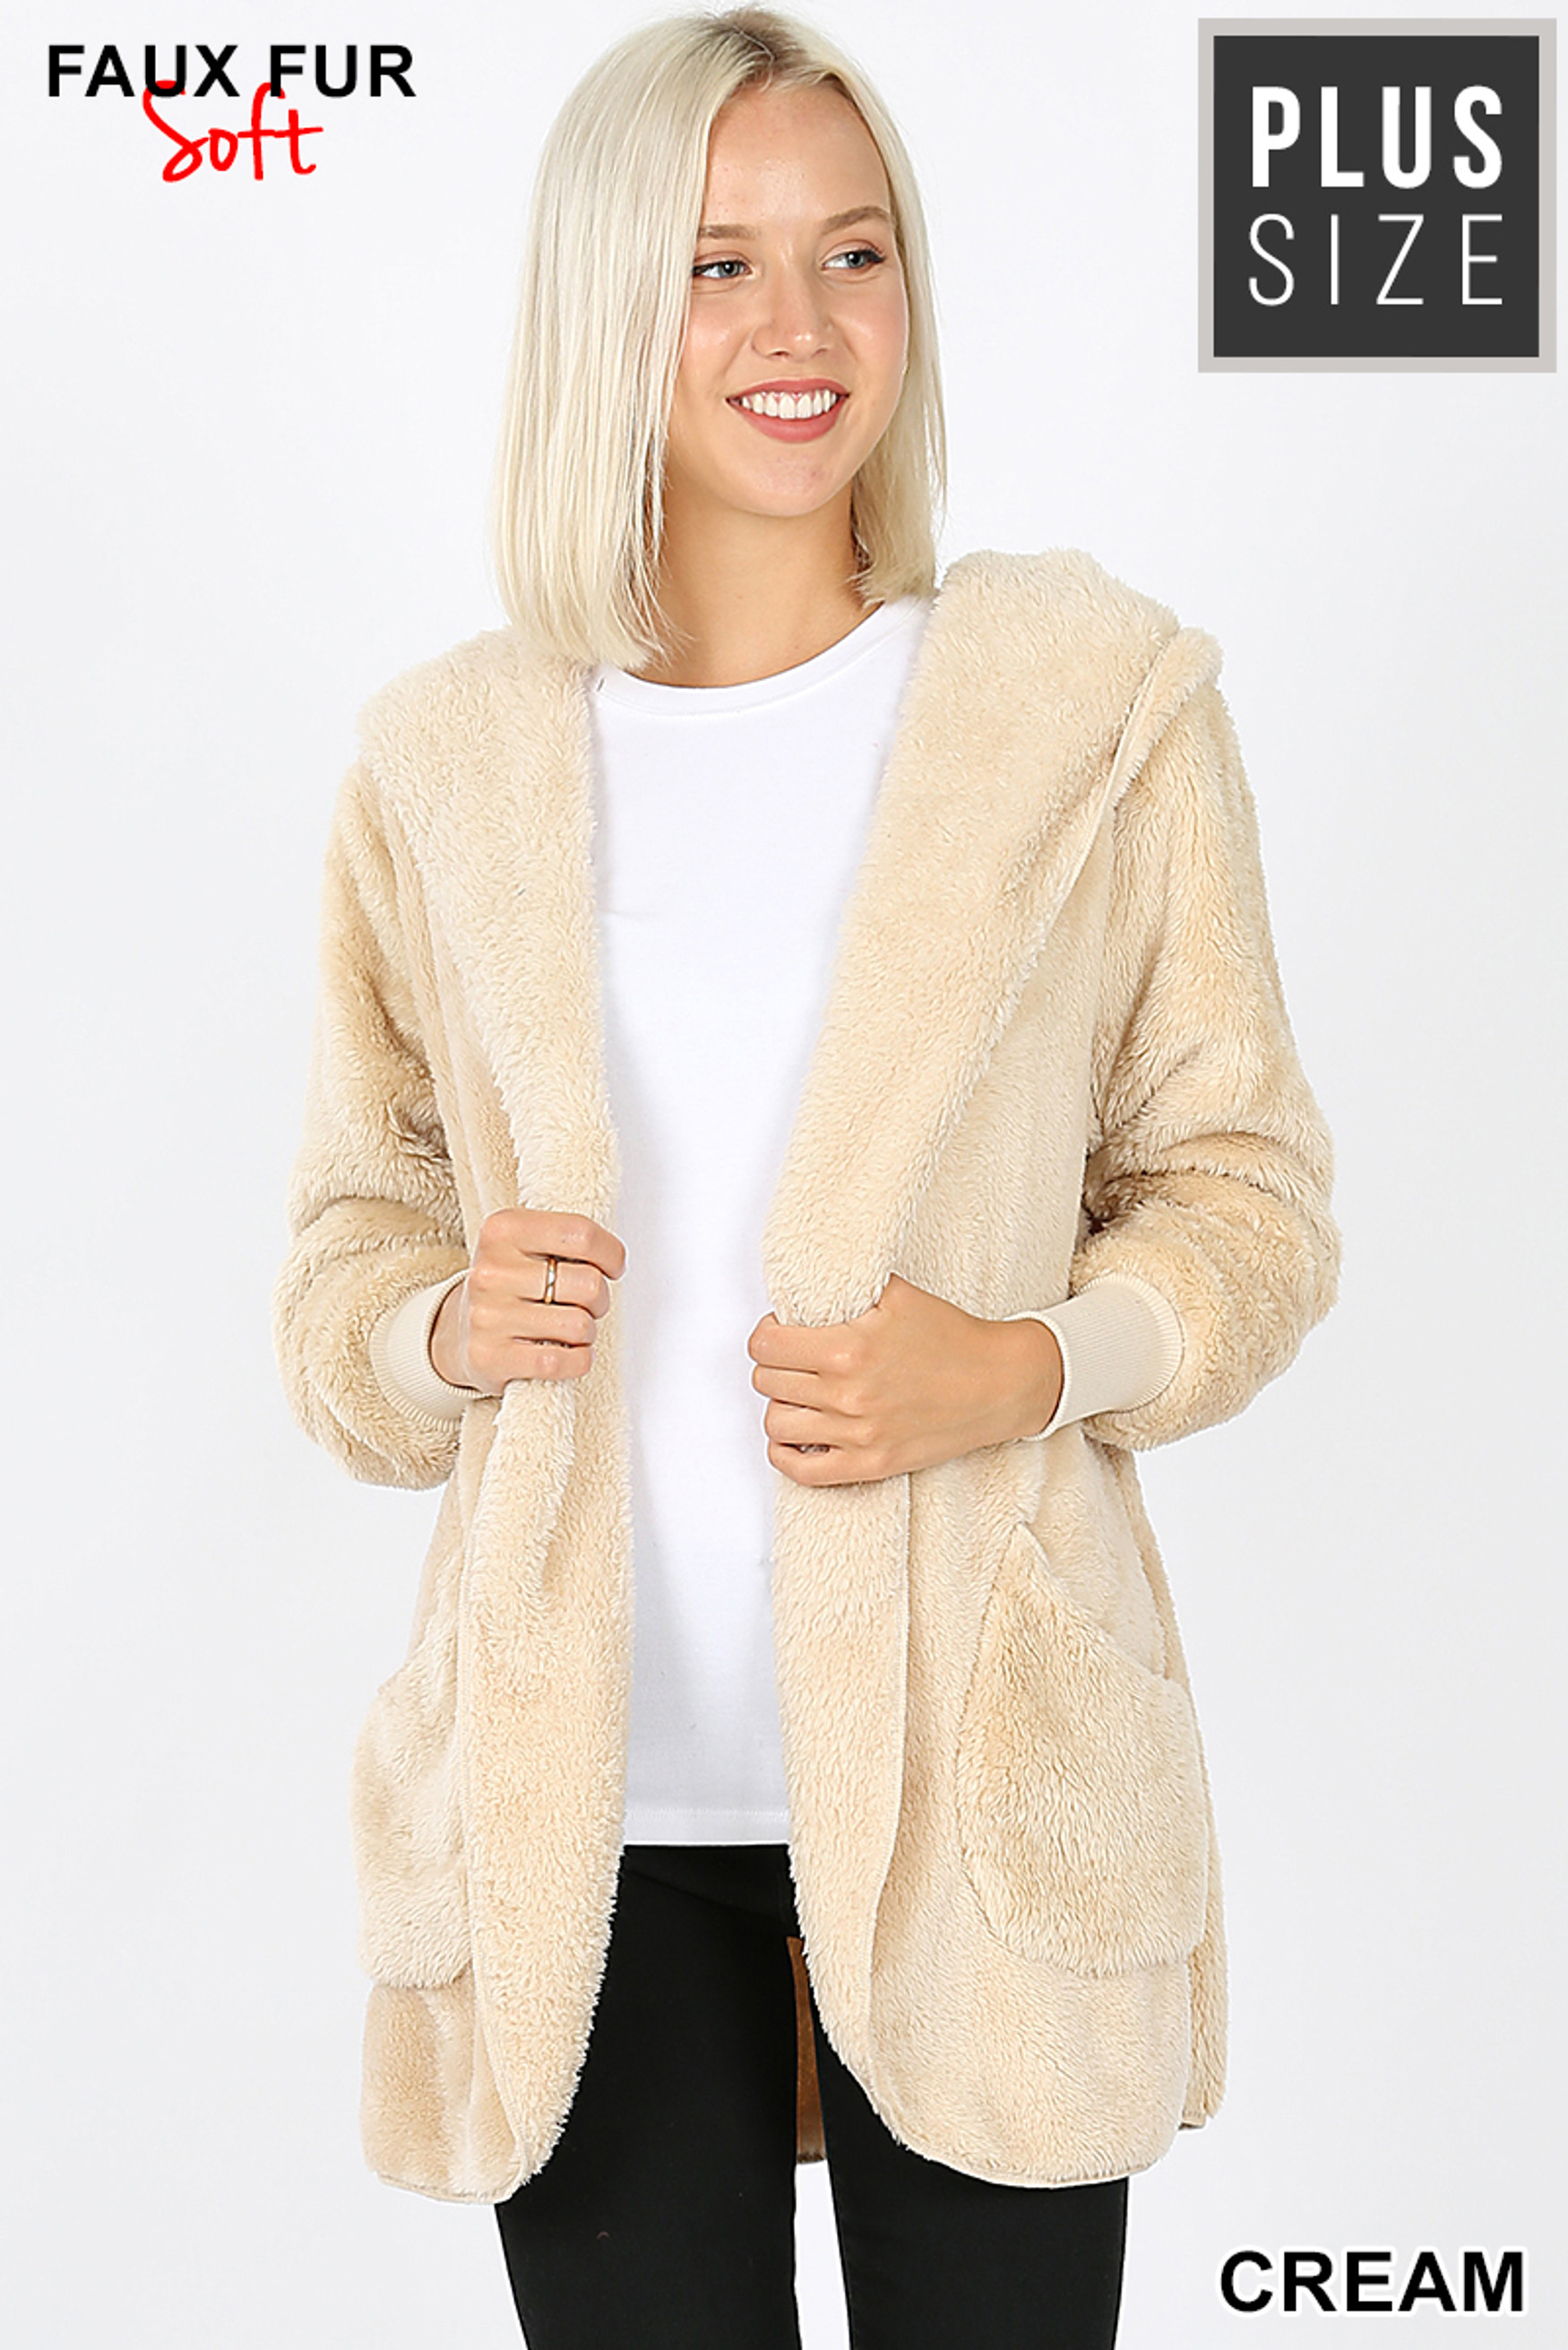 Front Image of Cream Faux Fur Hooded Cocoon Plus Size Jacket with Pockets